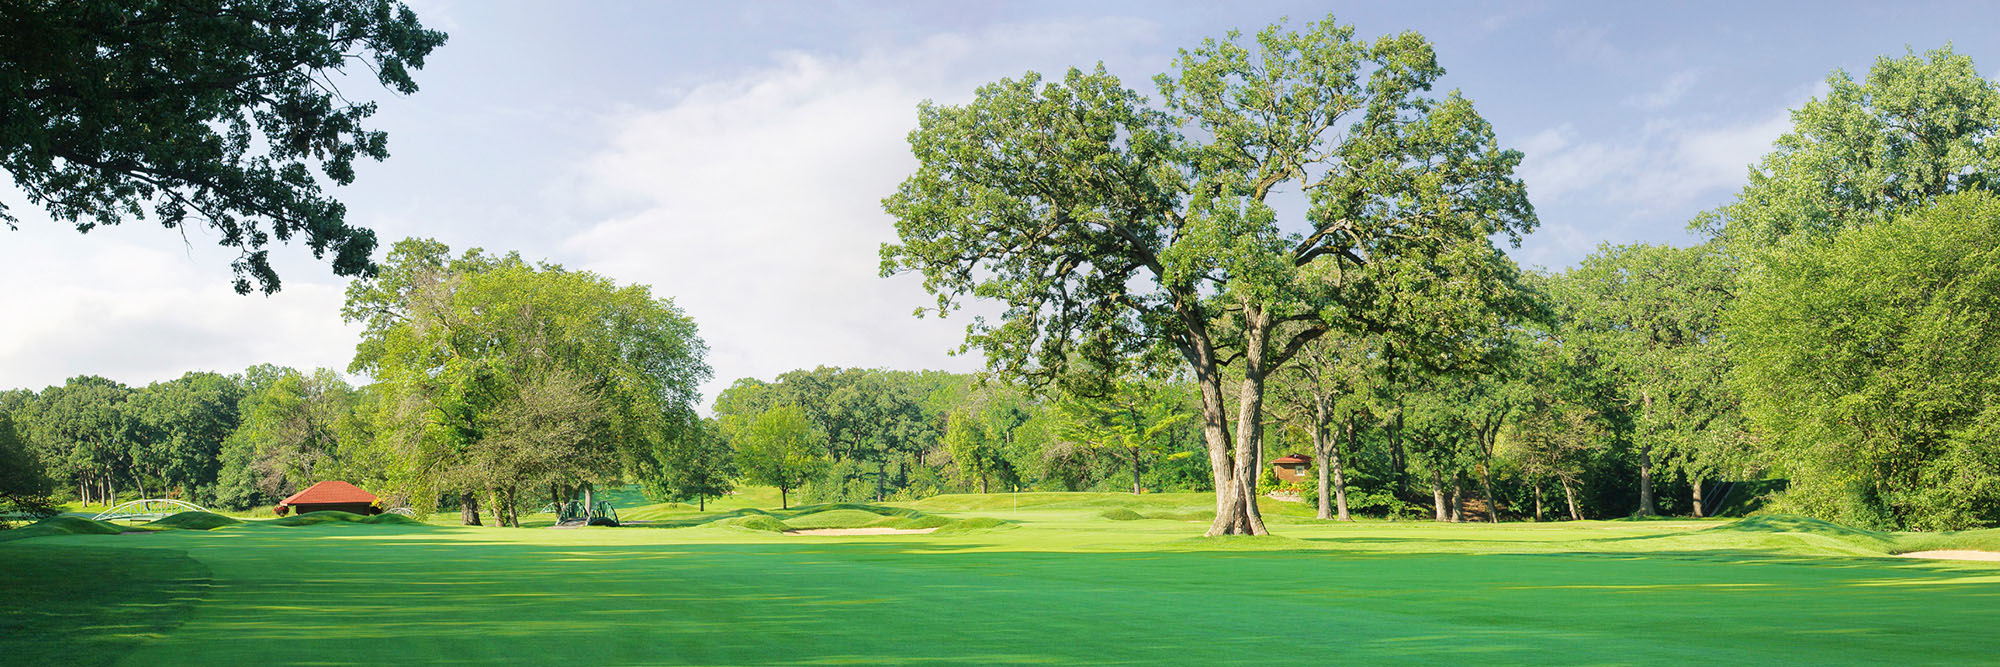 Golf Course Image - Olympia Fields South No. 11